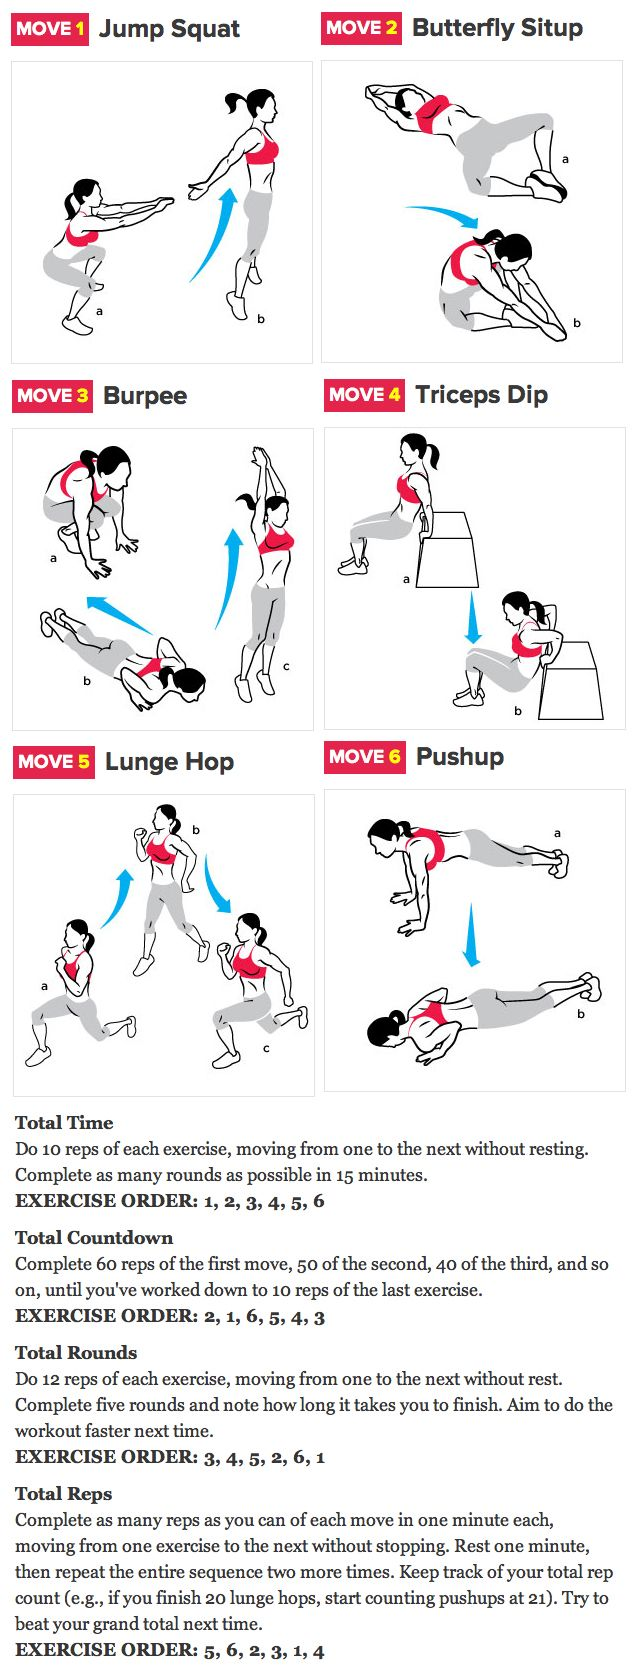 Crossfit exercises to do anywhere any time!